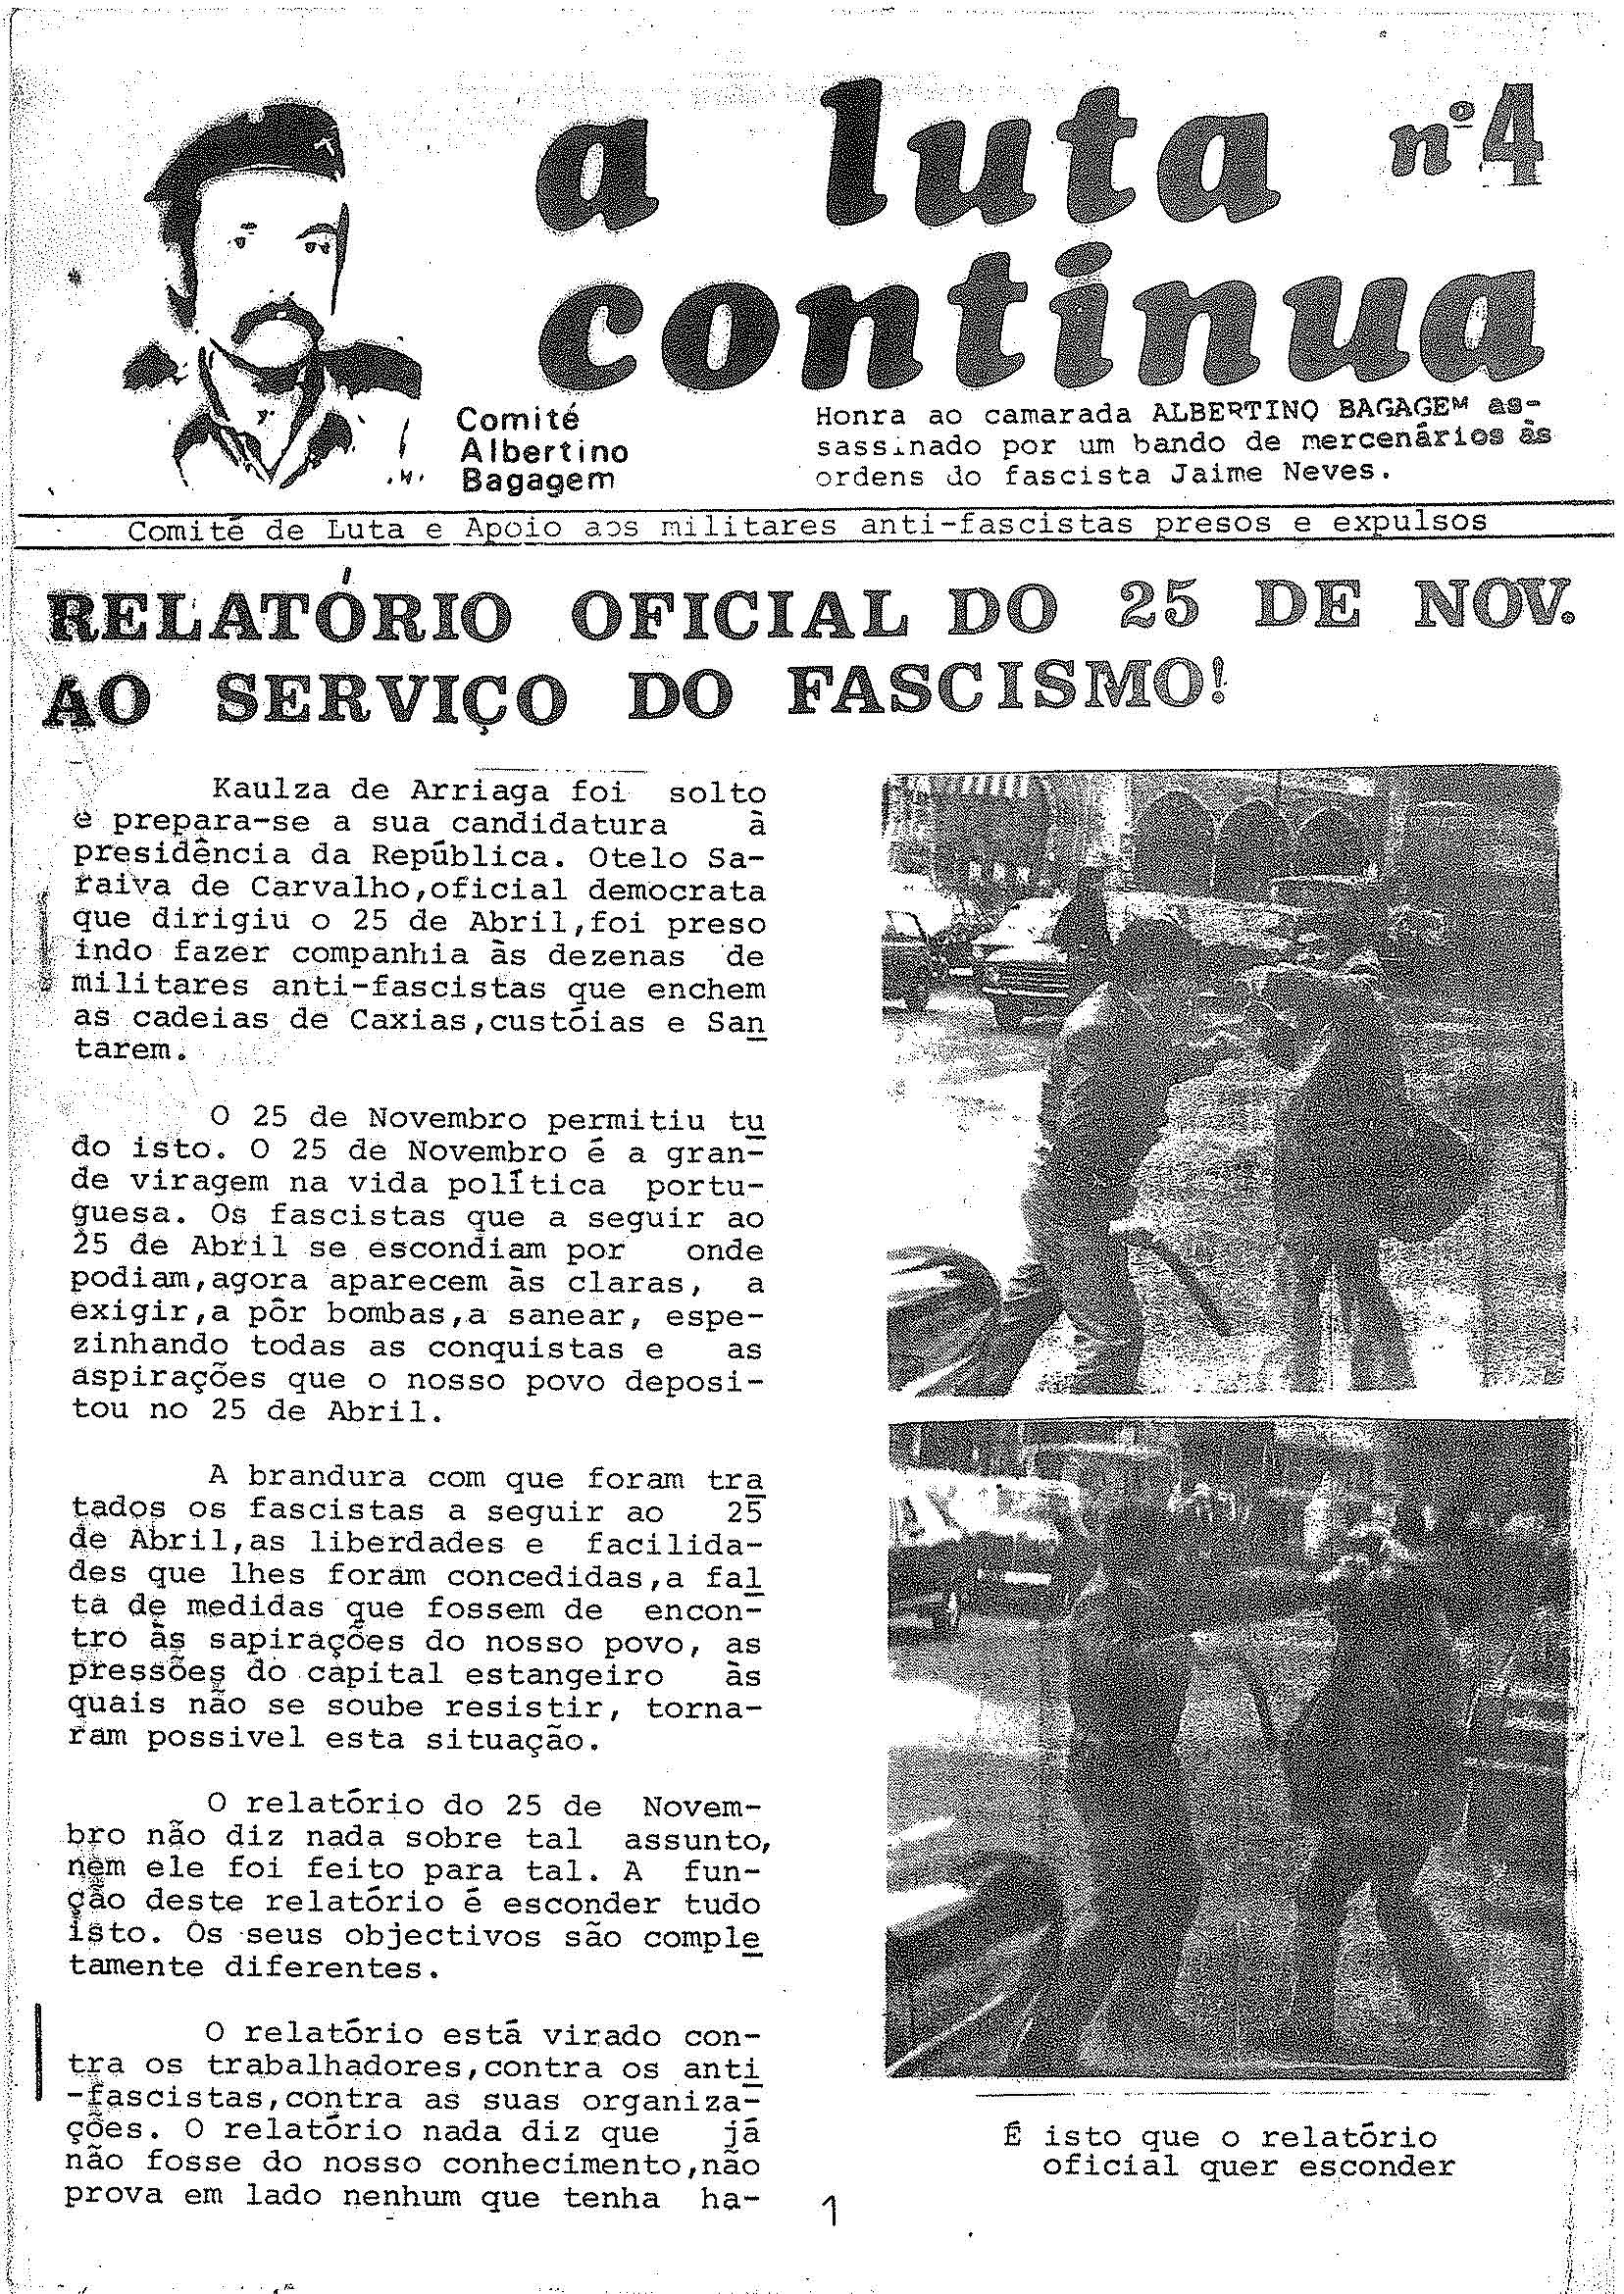 http://ephemerajpp.files.wordpress.com/2010/11/copy-of-a-luta-continua-4.jpg